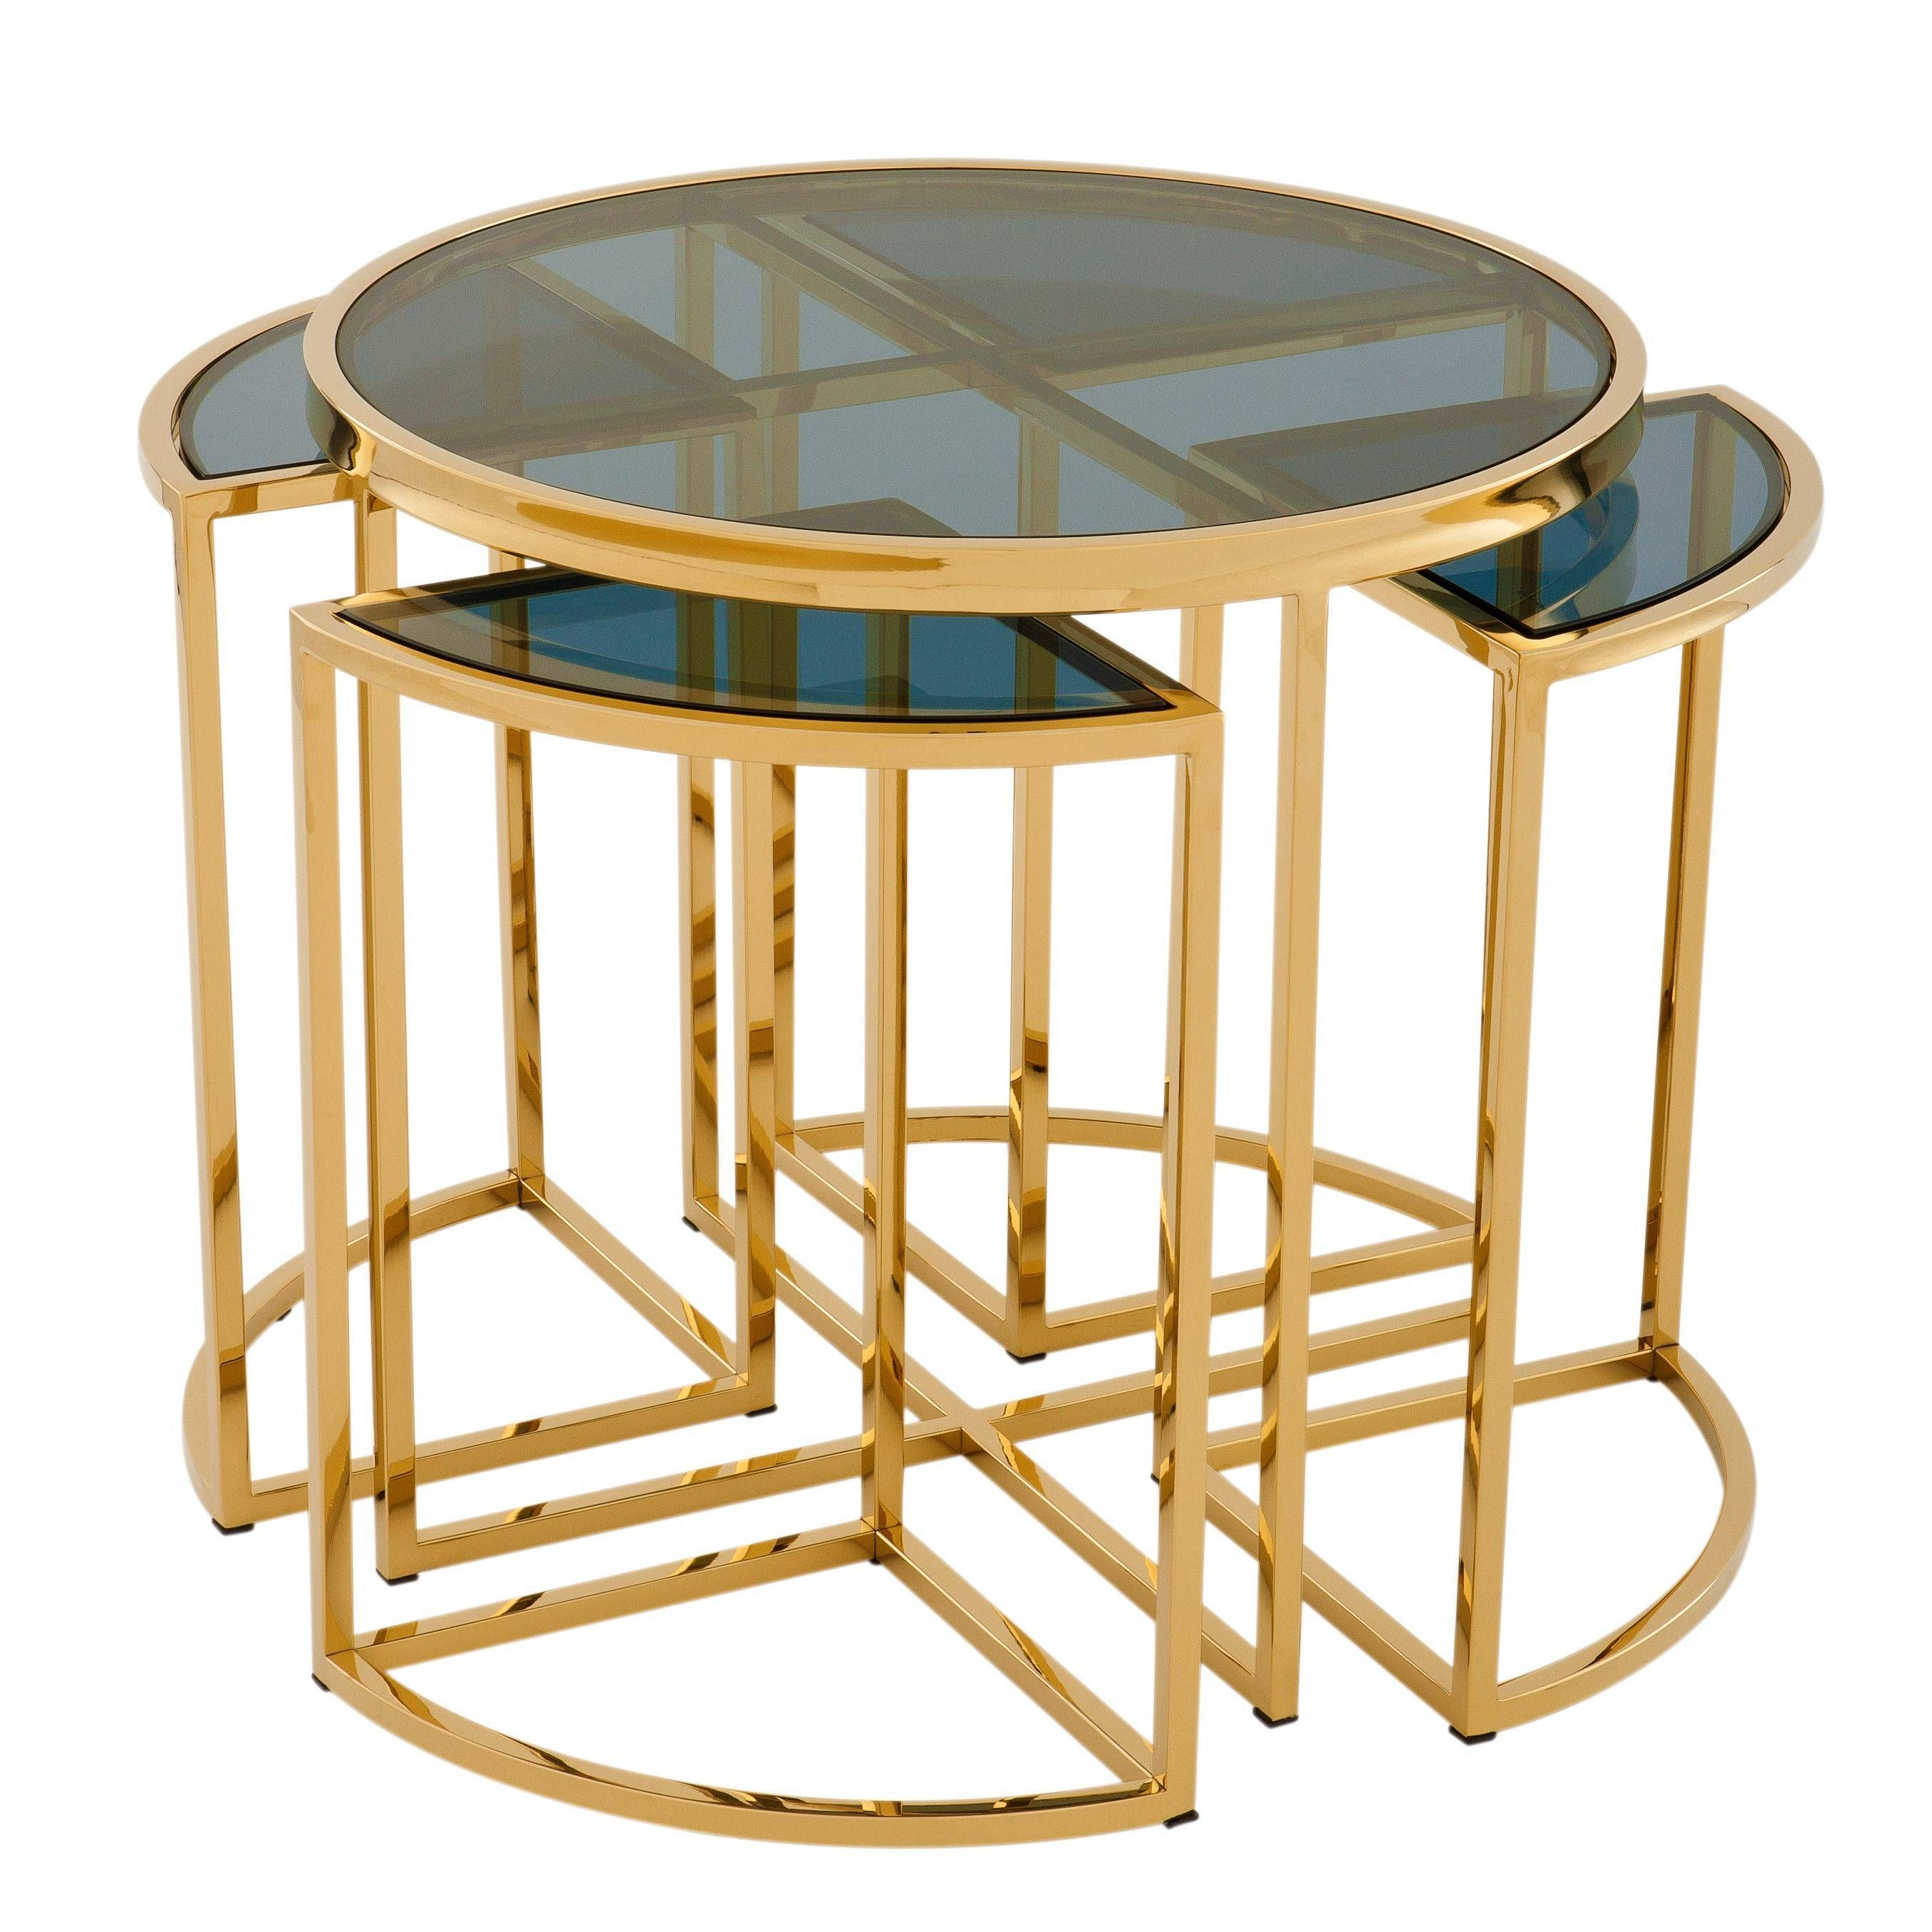 Gold Side Table Eichholtz Vicenza In 2021 Gold Side Table Side Table Glass Accent Tables